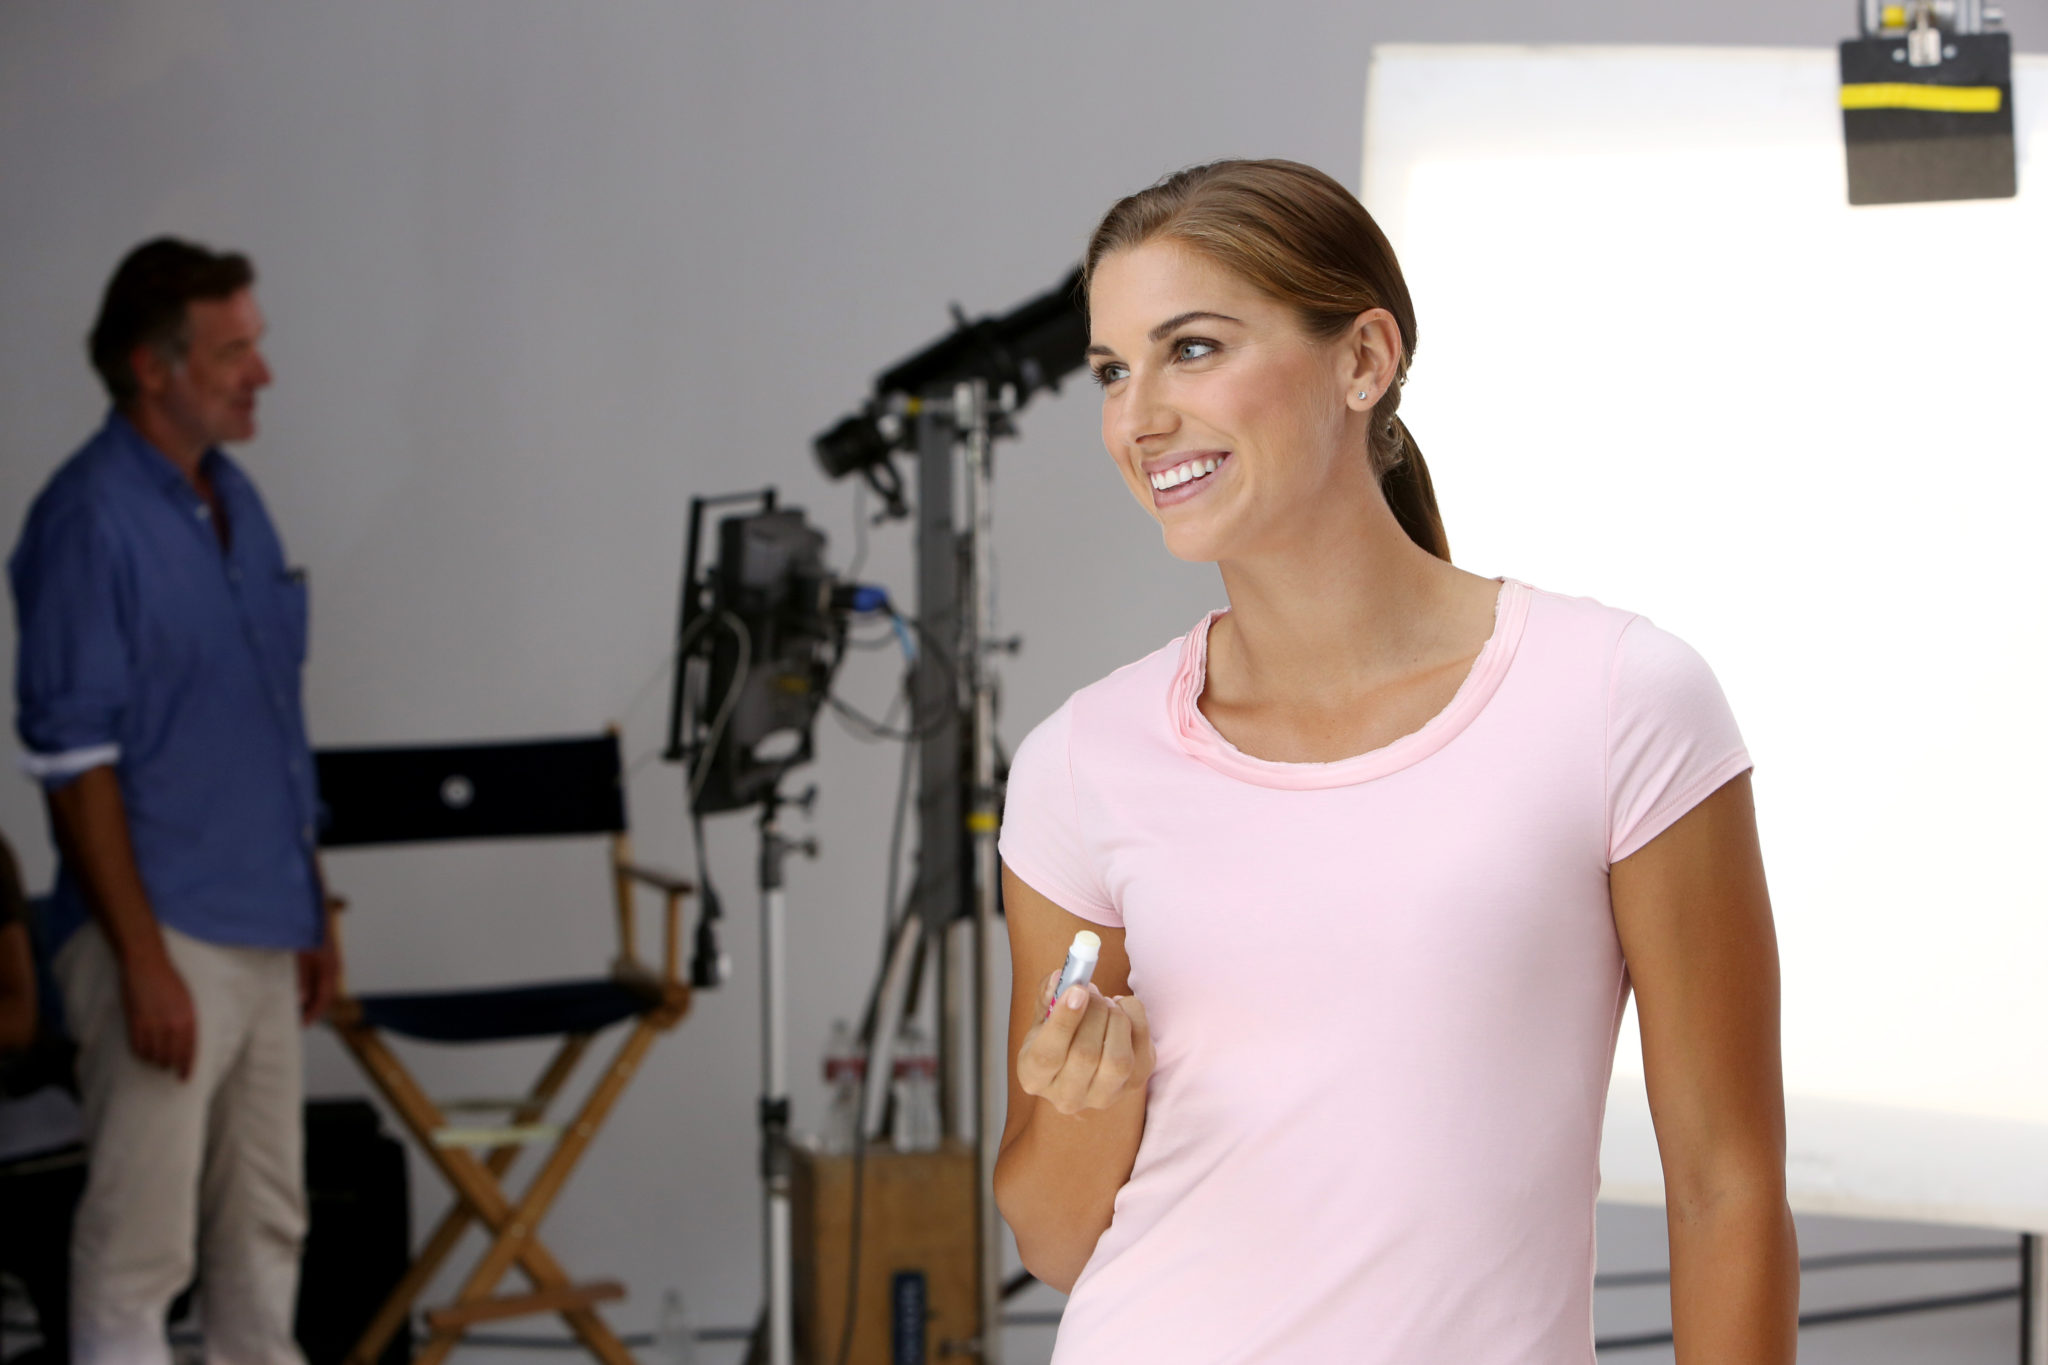 Alex Morgan, new spokesperson for ChapStick®, in first shoot with the brand on Tuesday, Oct. 8, 2013 in Los Angeles. (Photo by Casey Rodgers/Invision for ChapStick®/AP Images)